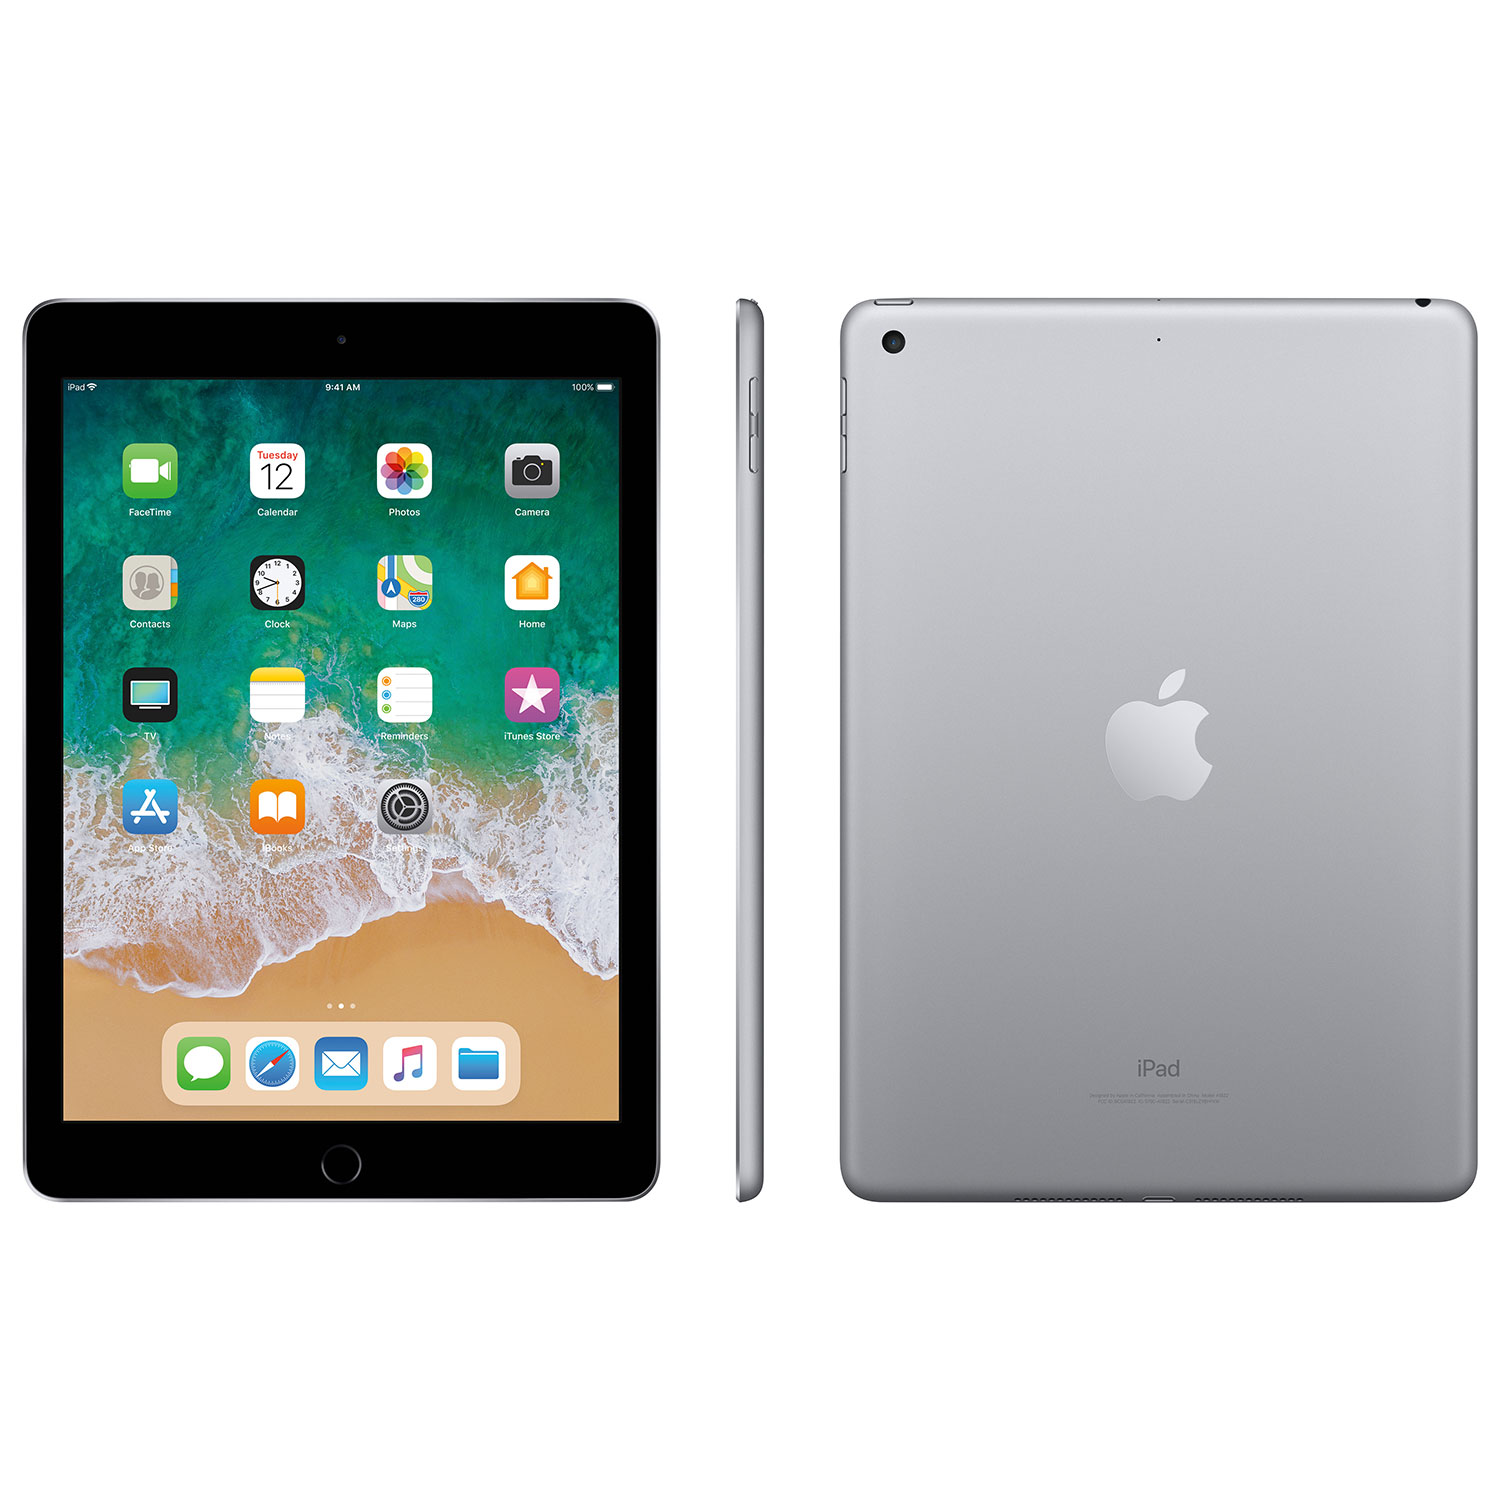 apple 9 7 ipad 32gb space grey. apple ipad 9.7\ 9 7 ipad 32gb space grey